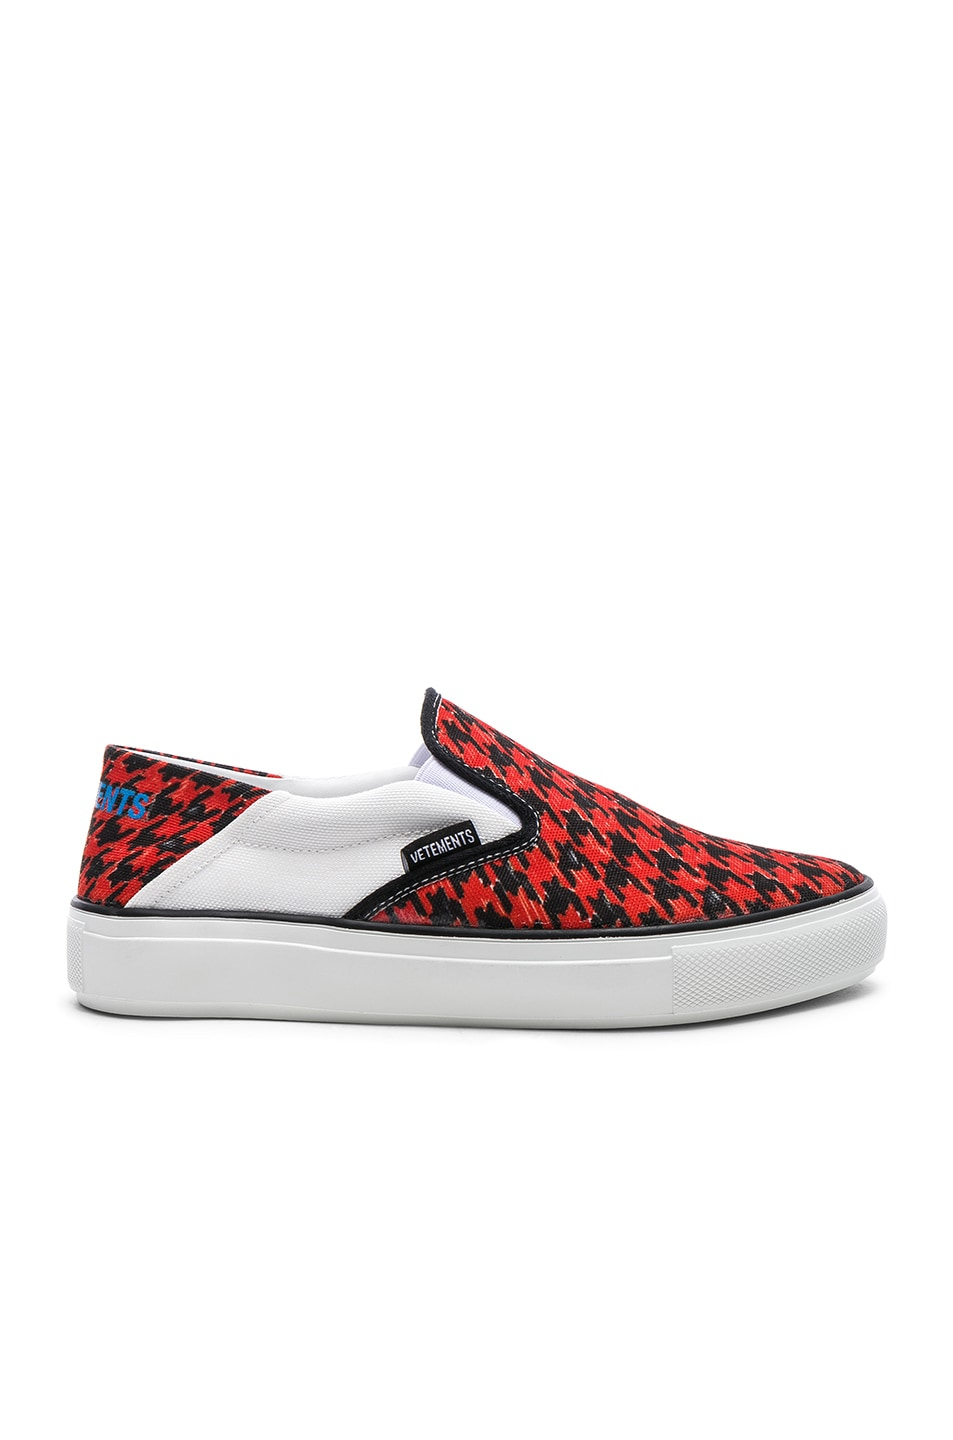 Image 1 of VETEMENTS Canvas Checkerboard Slip On Sneakers in Red & Black